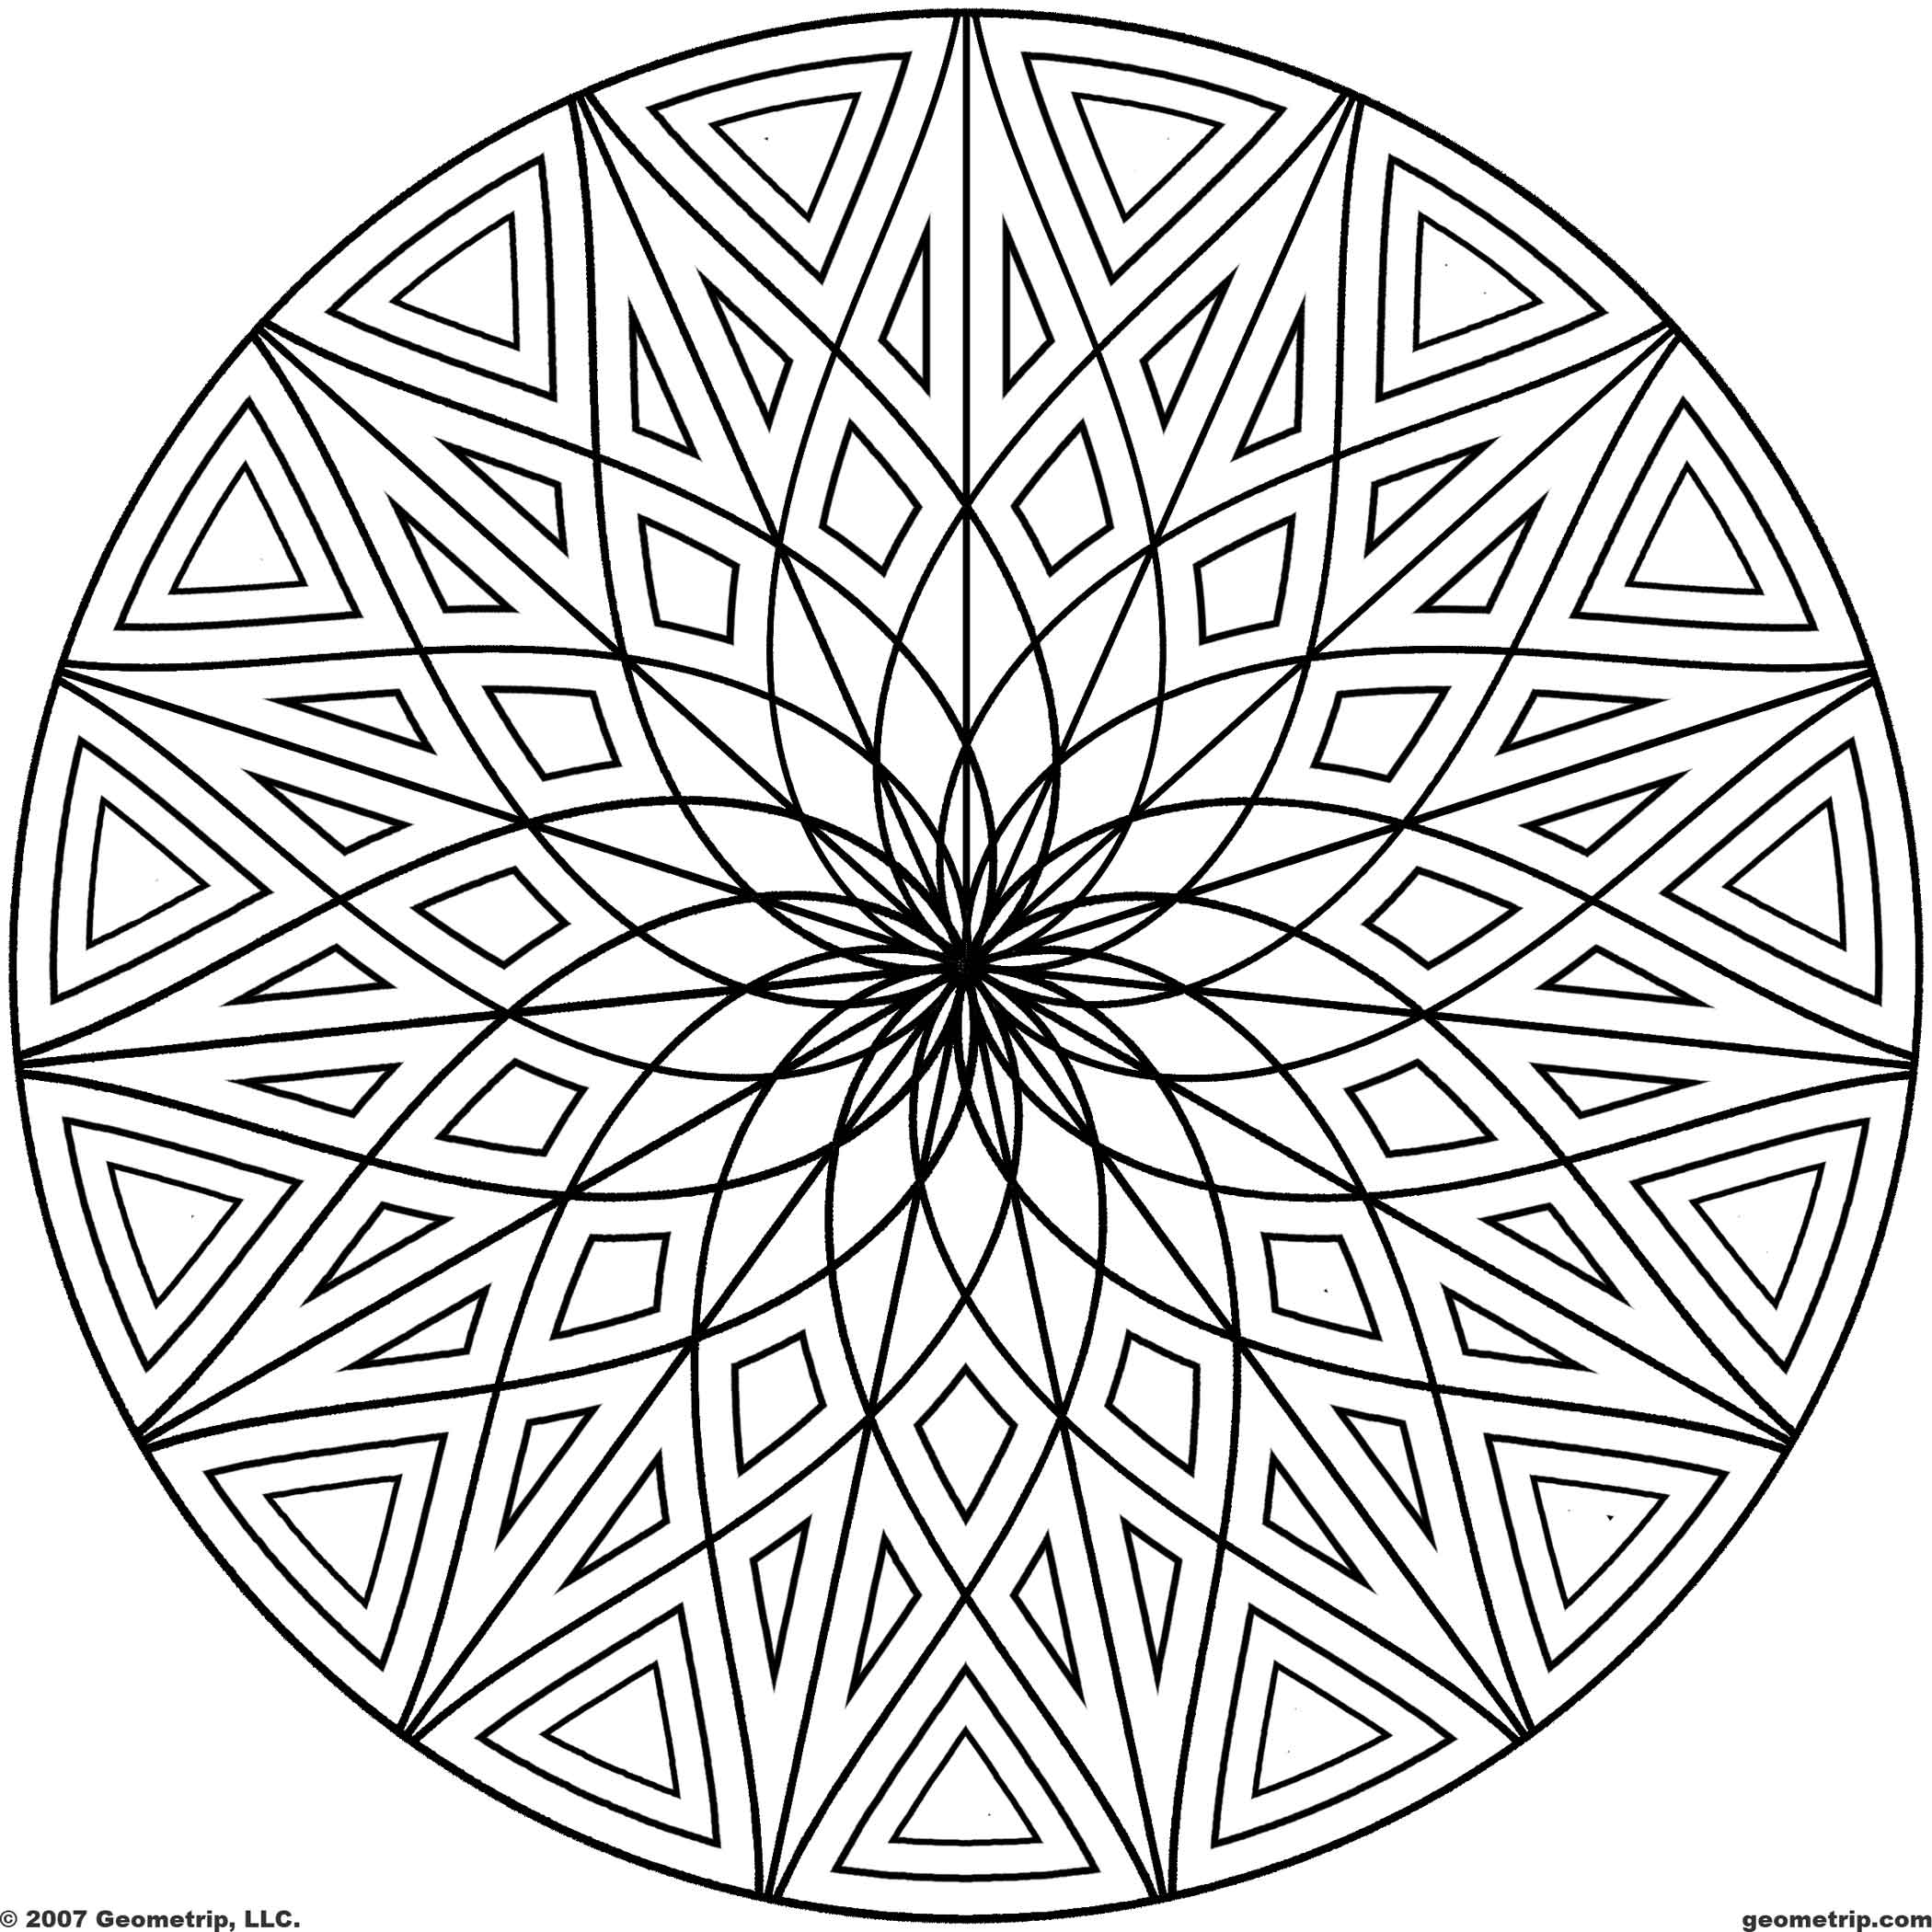 pattern colouring pages to print cool geometric design coloring pages getcoloringpagescom print pattern colouring to pages